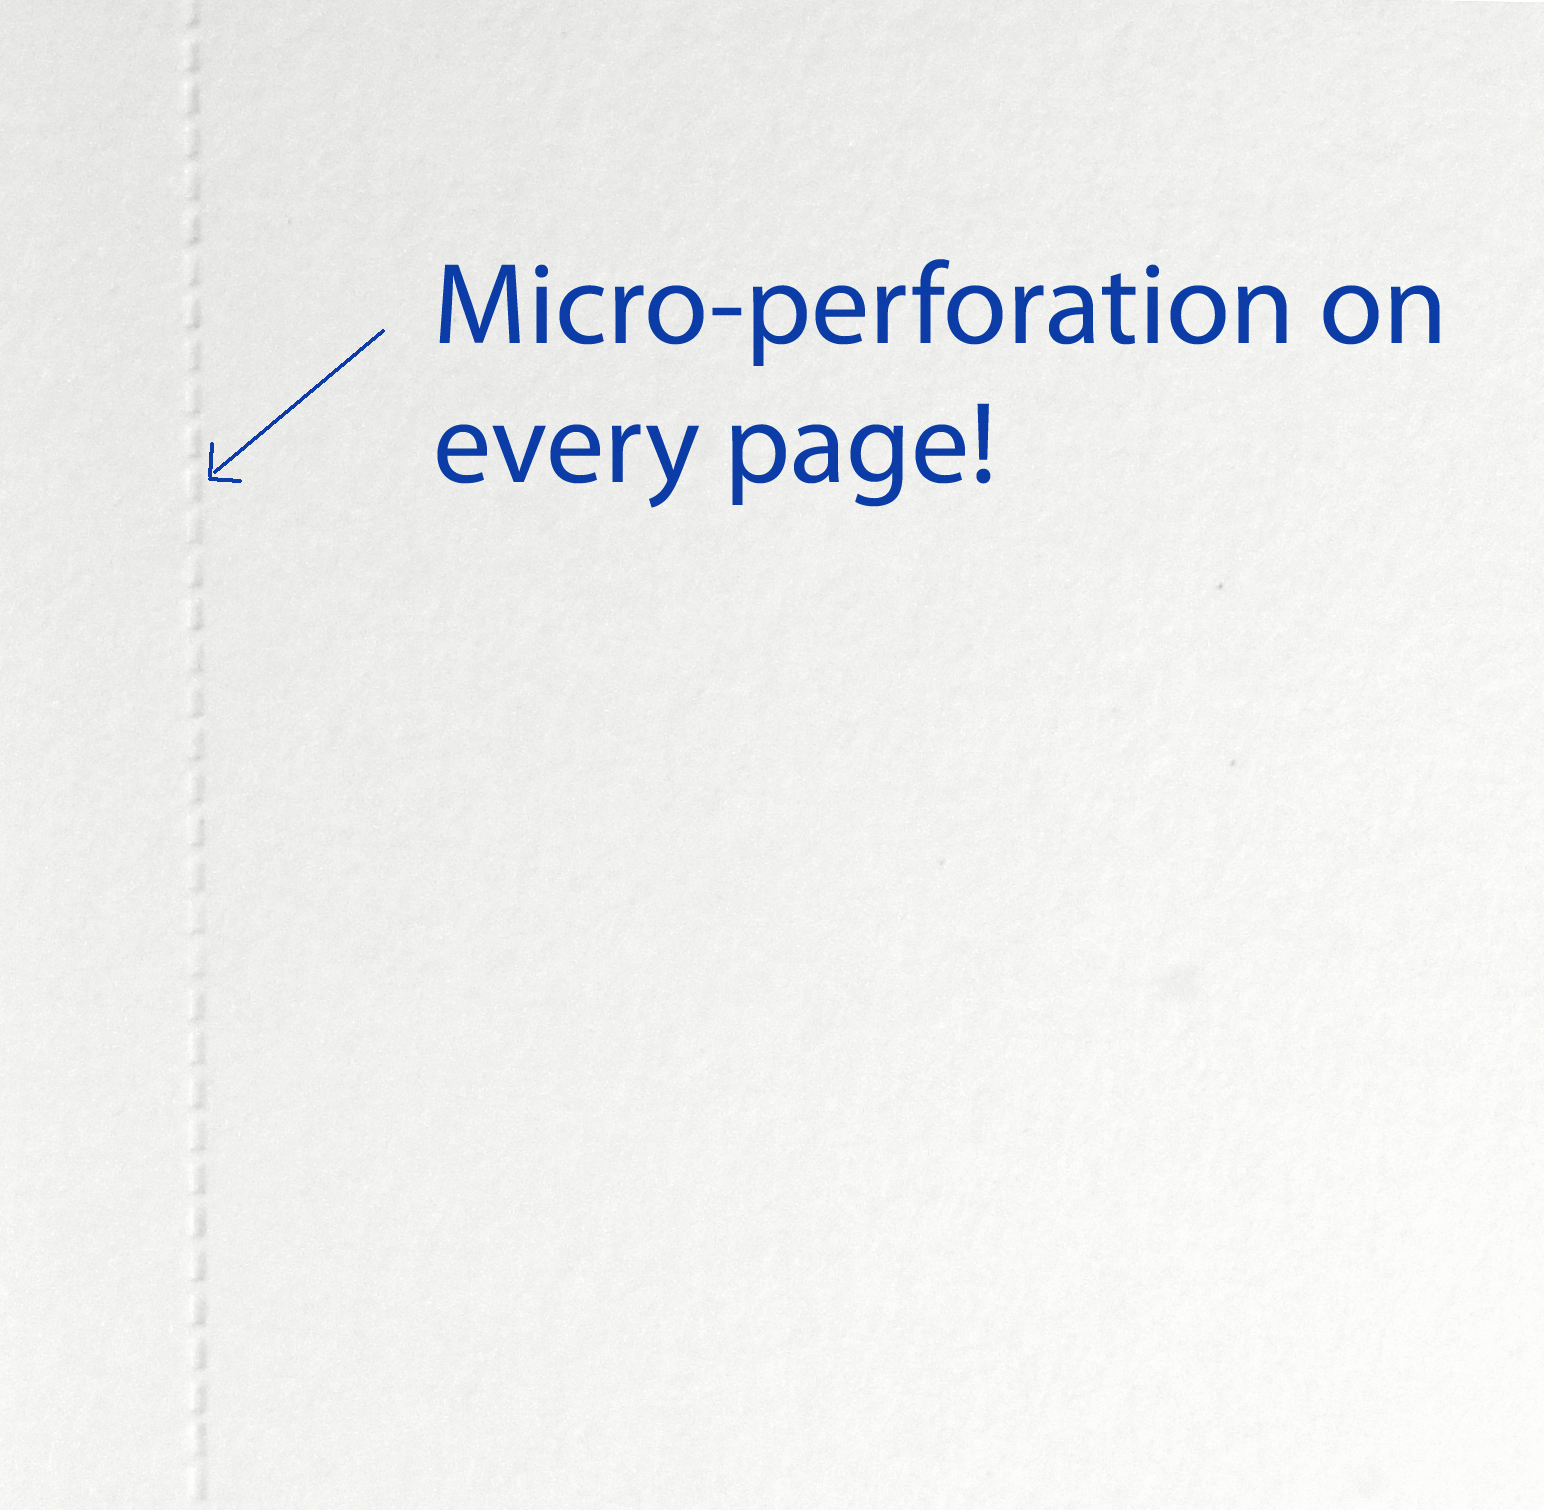 View of micro-perforation on pages